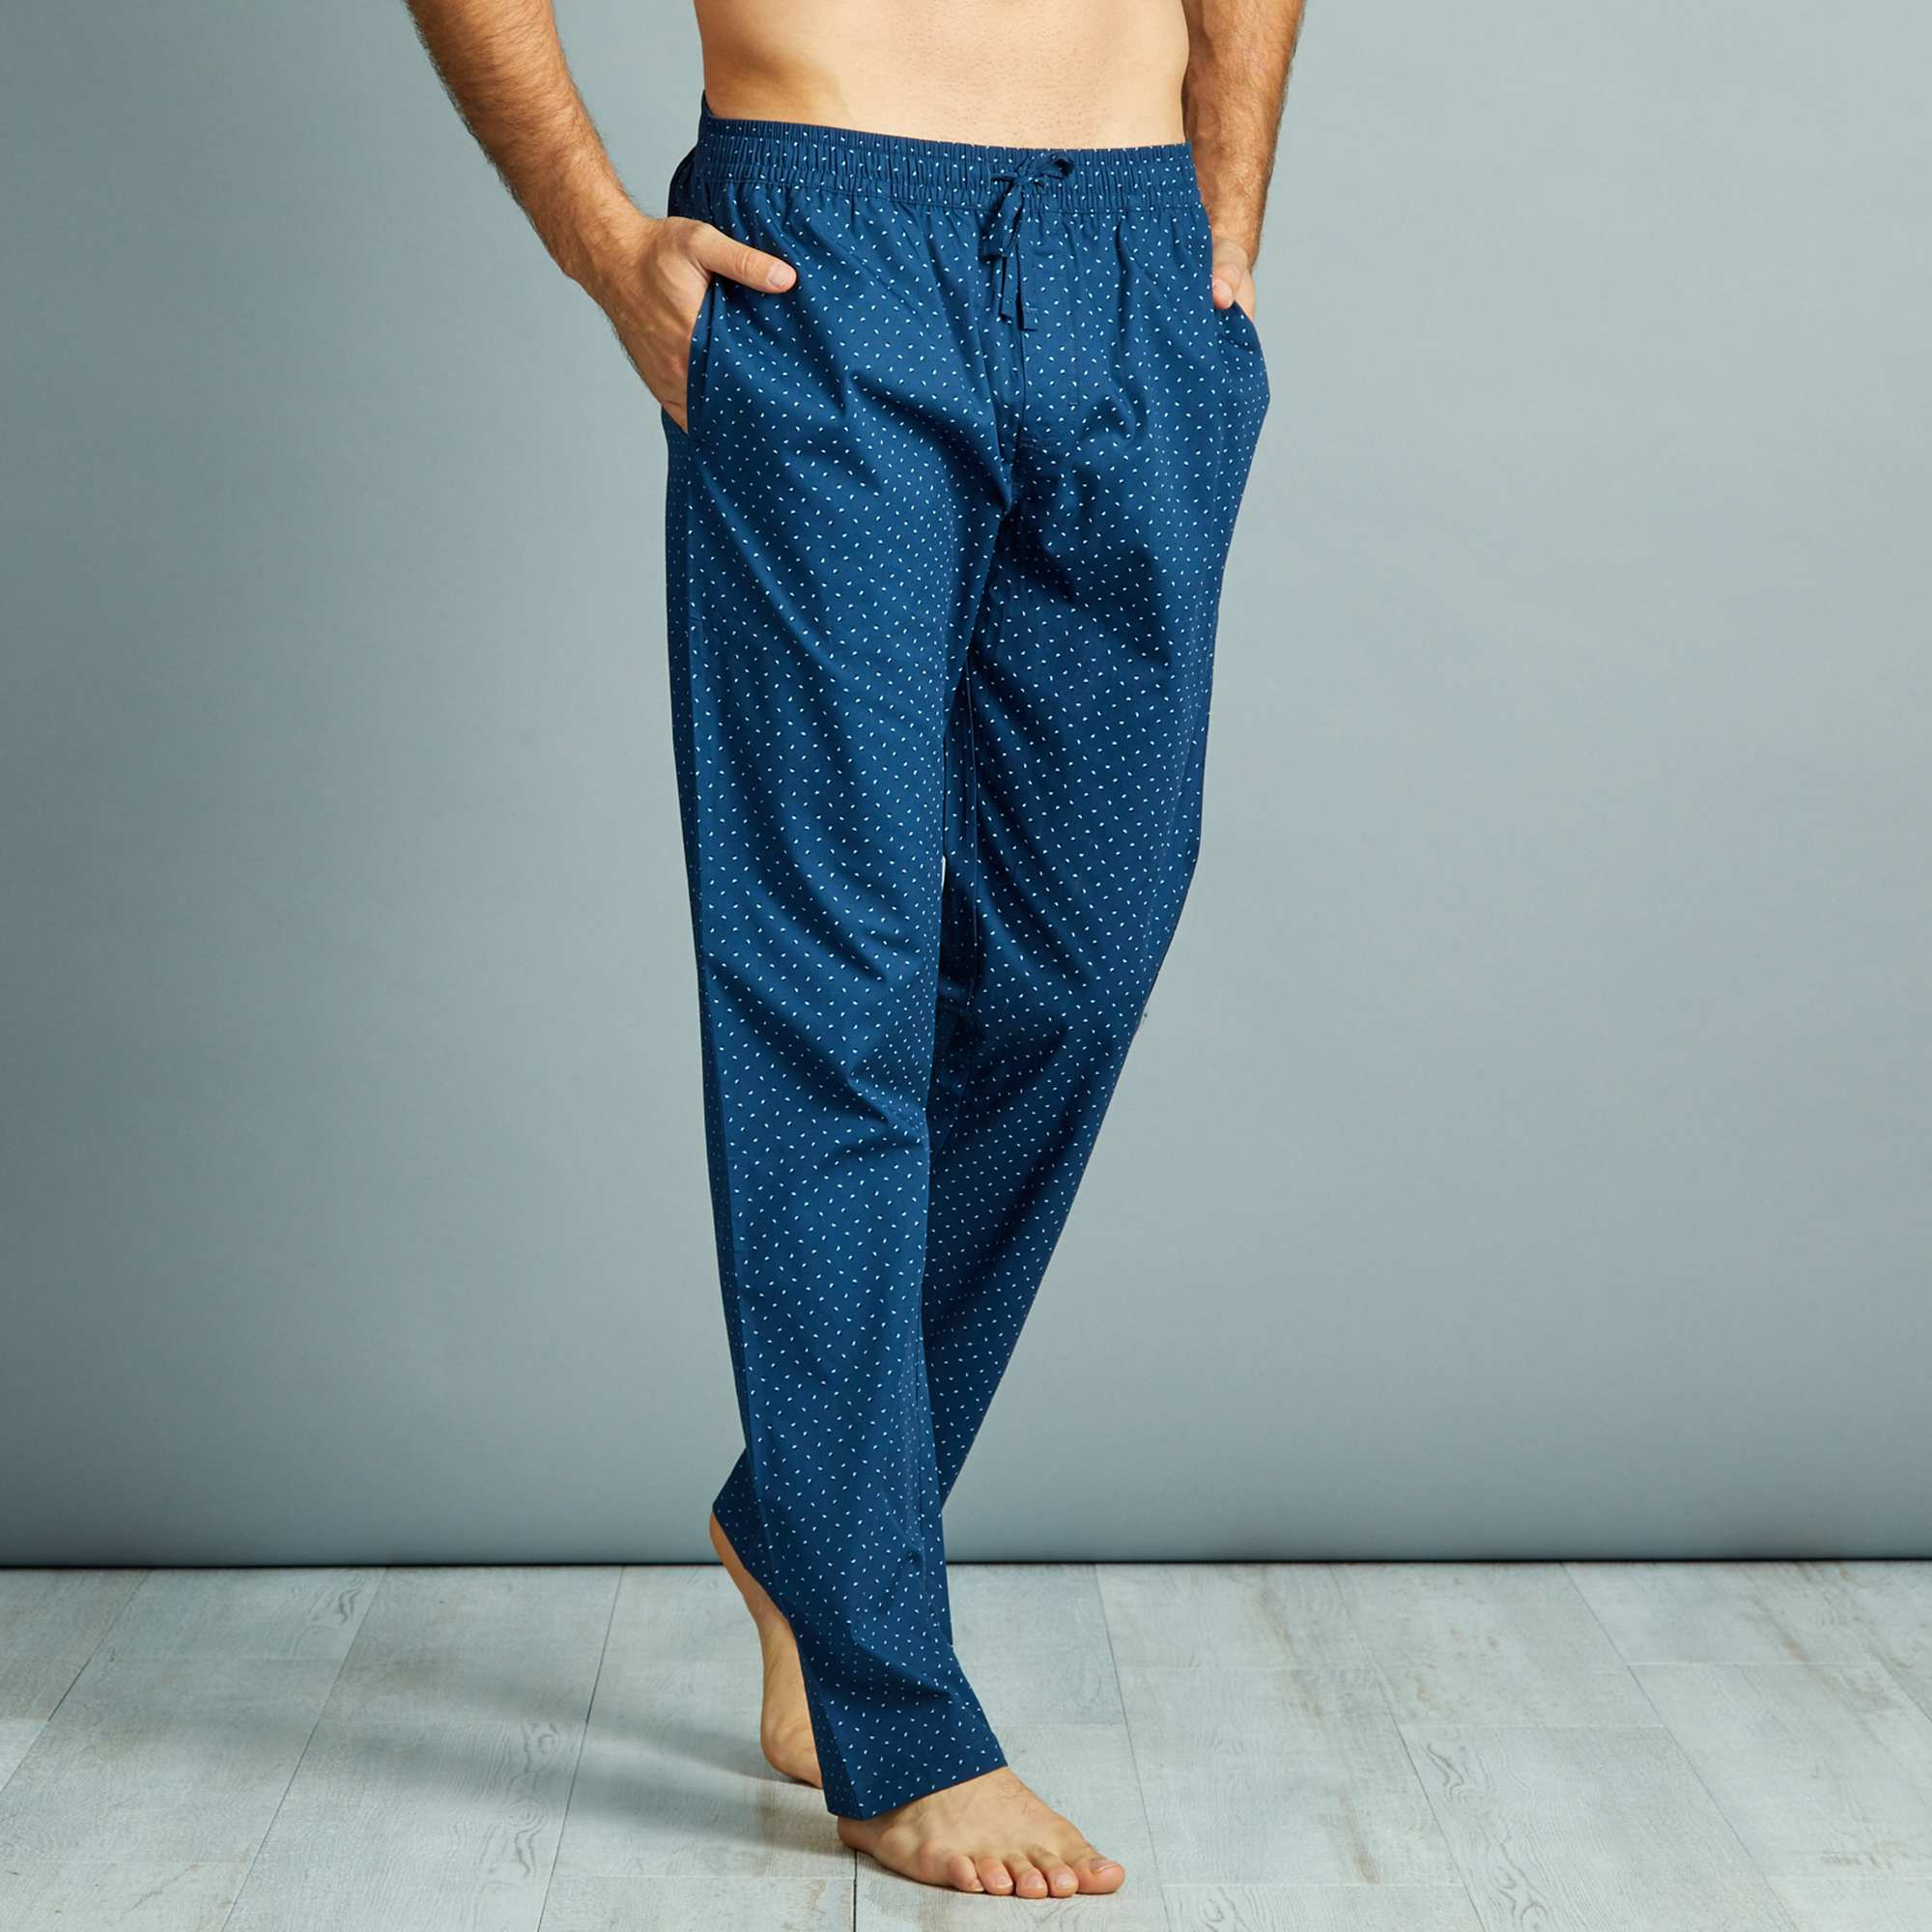 pantalon de pyjama en popeline pur coton homme bleu pois kiabi 12 00. Black Bedroom Furniture Sets. Home Design Ideas